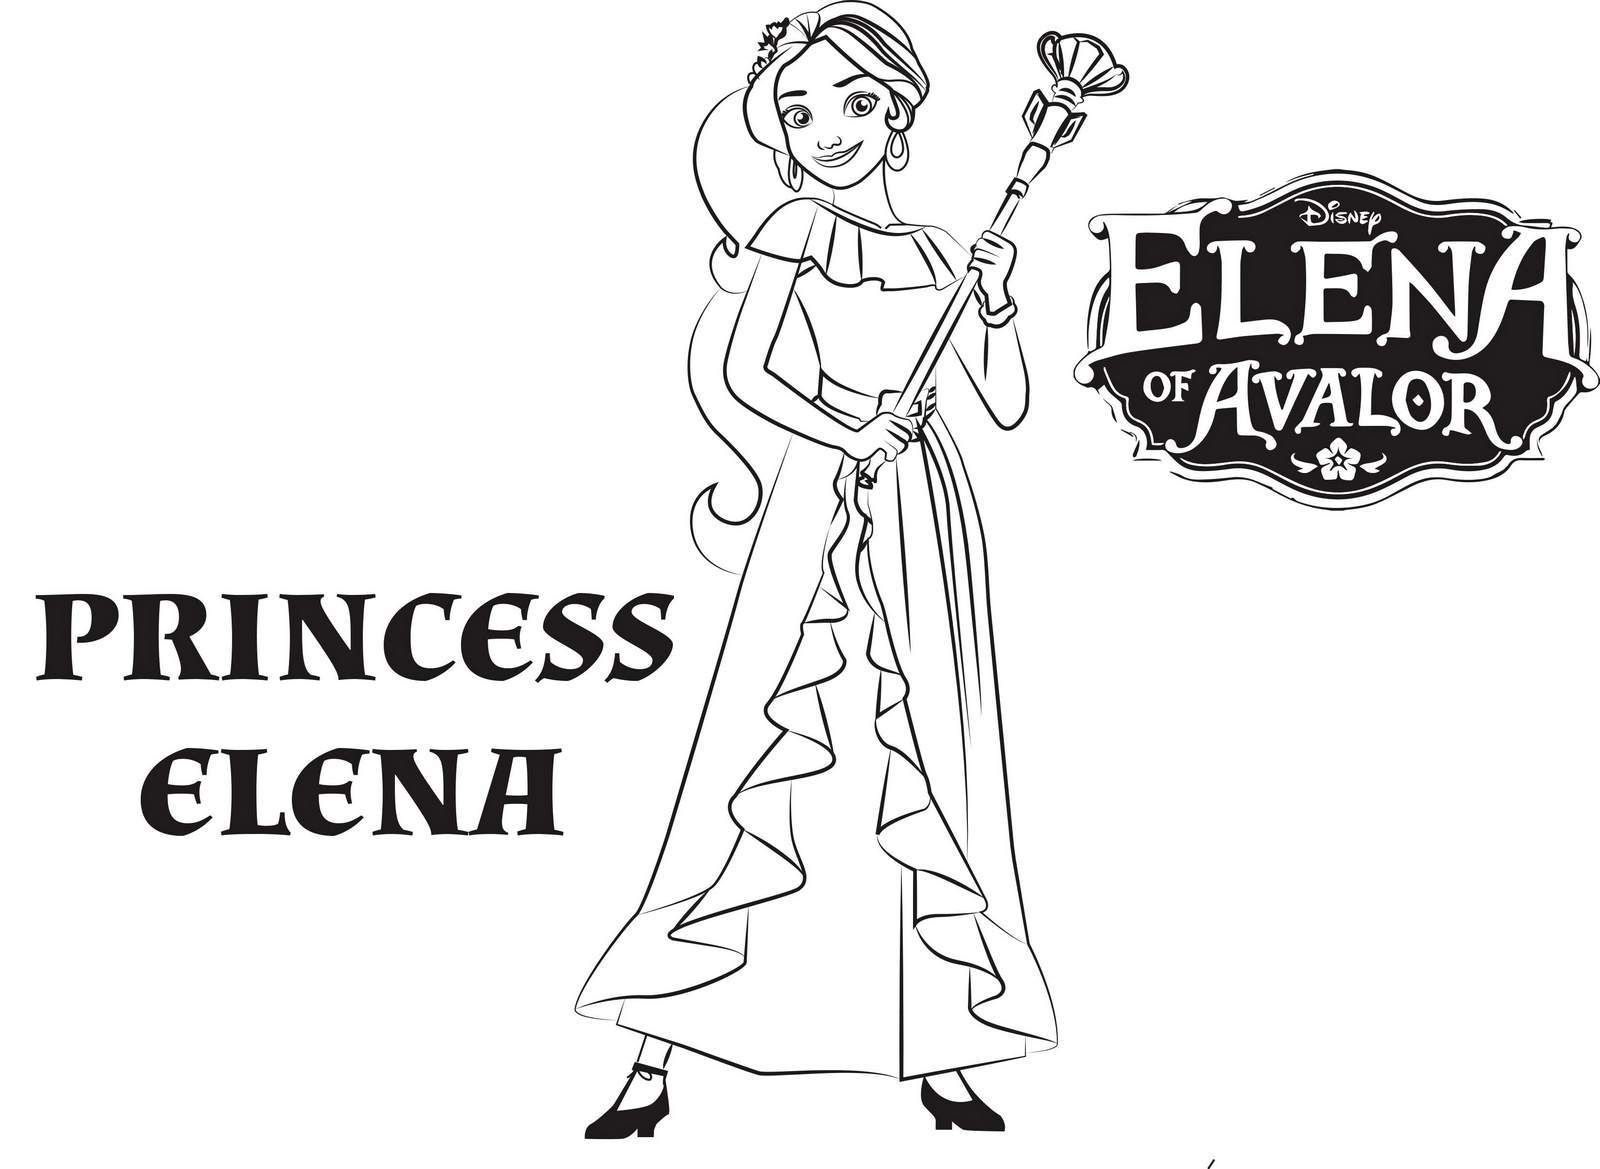 Princess Elena From Elena Of Avalor Coloring Pages Disney Coloring Pages Princess Elena Coloring Pages Inspirational